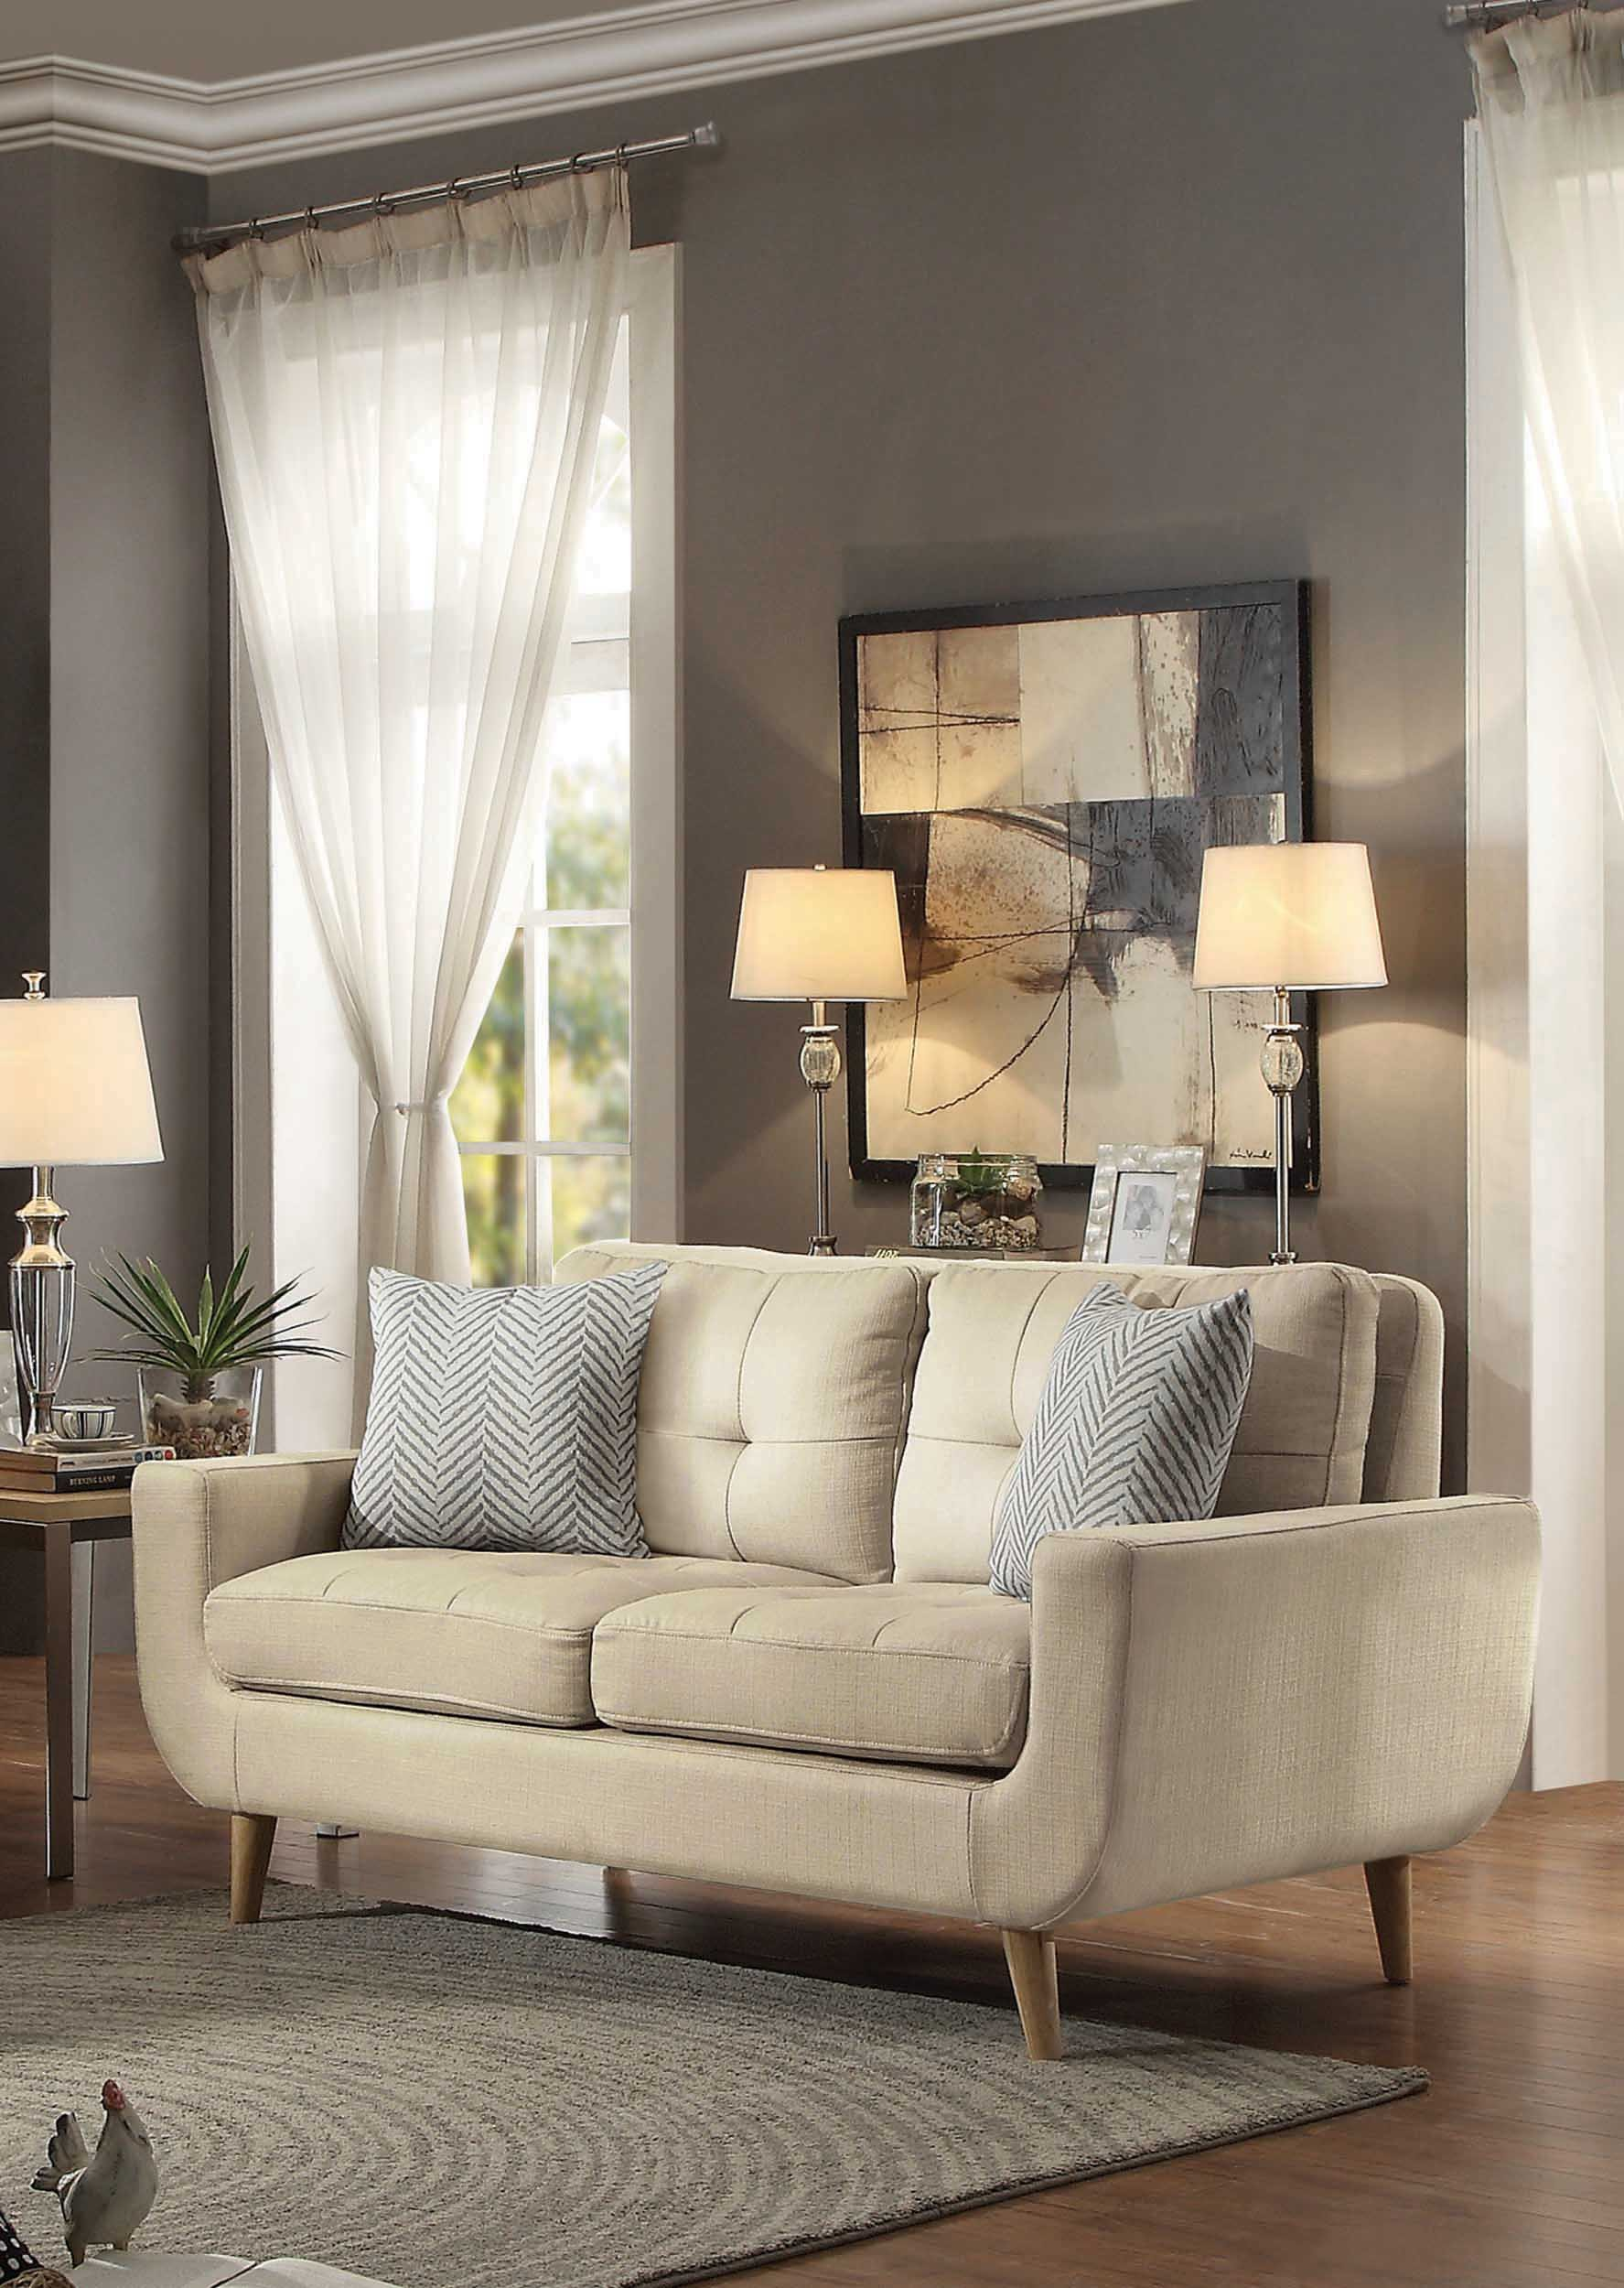 Homelegance Deryn Mid-Century Modern Loveseat with Tufted Back and Two Herringbone Throw Pillows, Beige by Homelegance (Image #2)